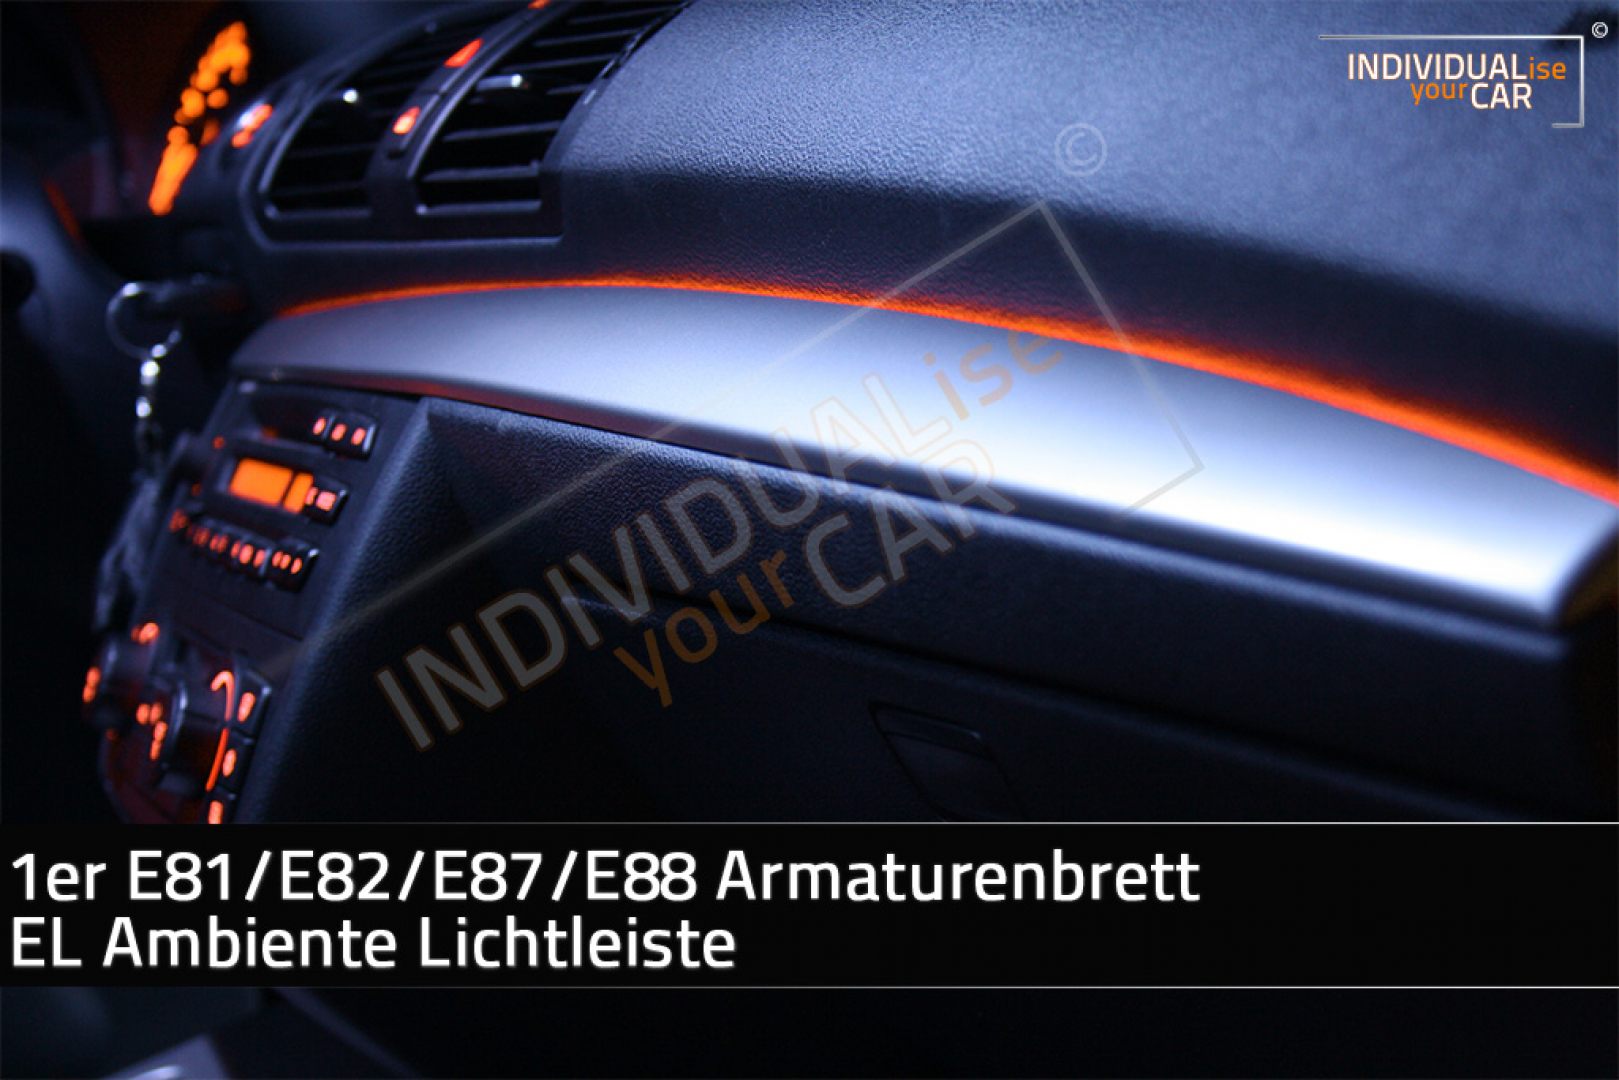 Individualiseyourcar Shop 1 Series E81 E82 E87 E88 Dashboard El Ambience Light Strip